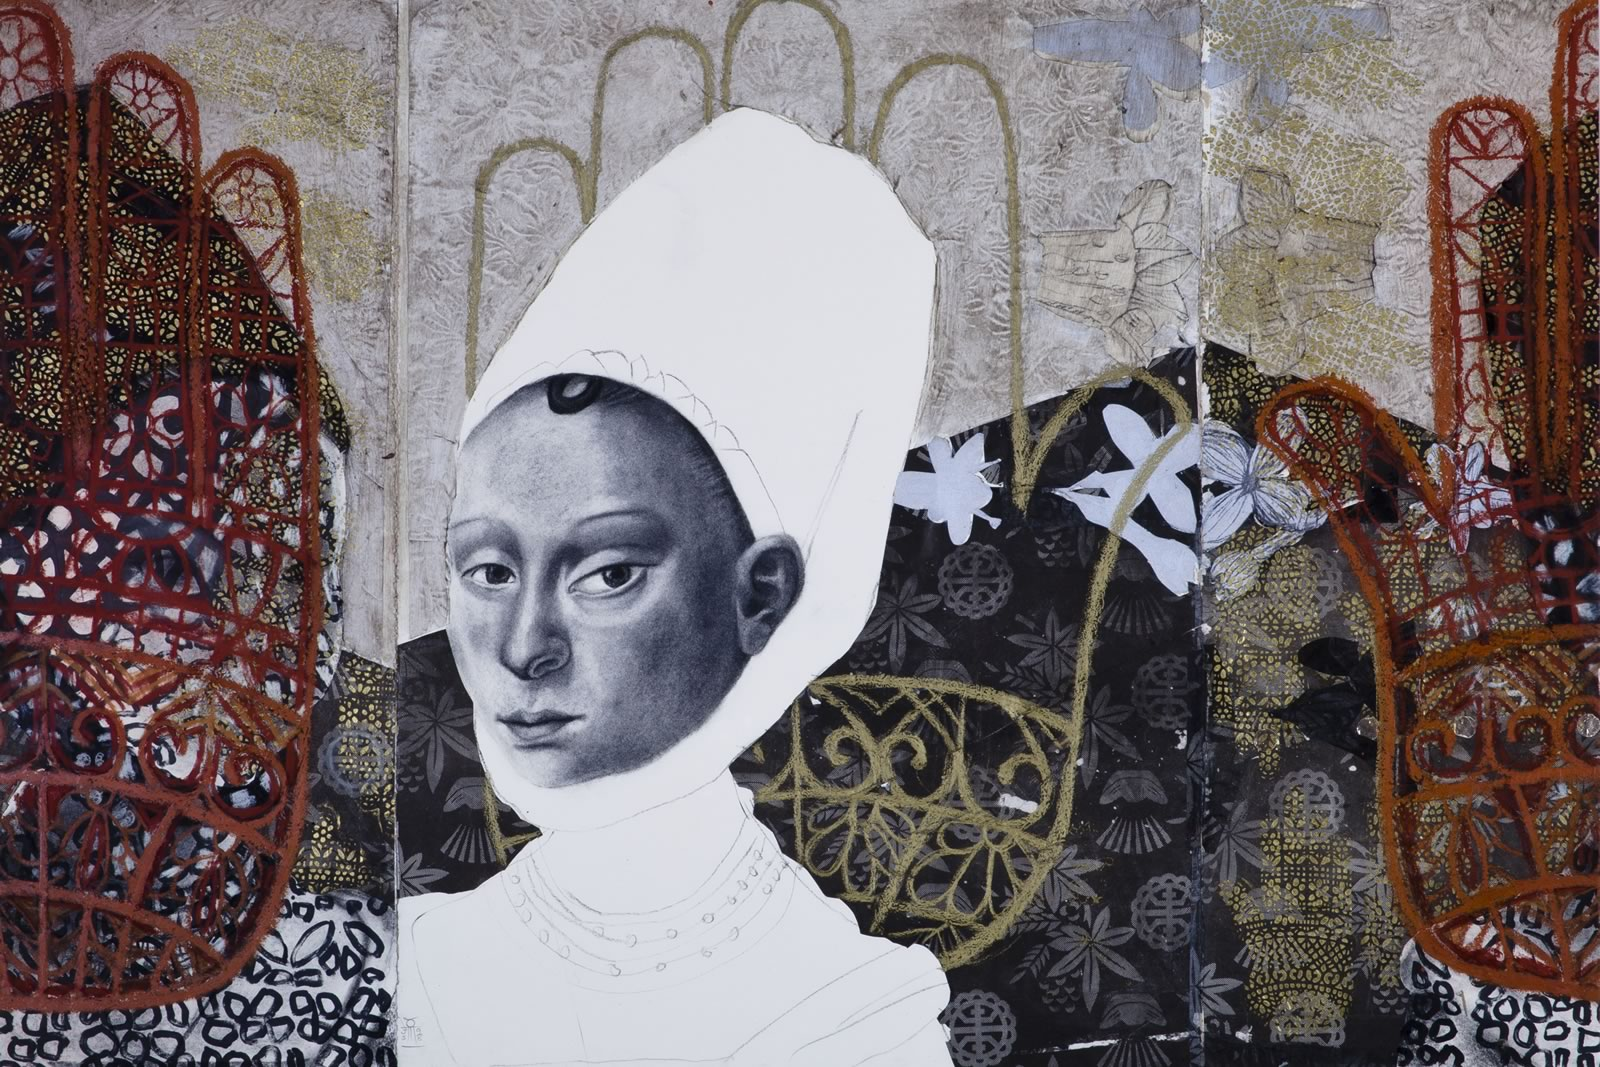 1998 Winner of The Hutchins Art Prize - Jaqui Stockdale - The Handmaid's Tale